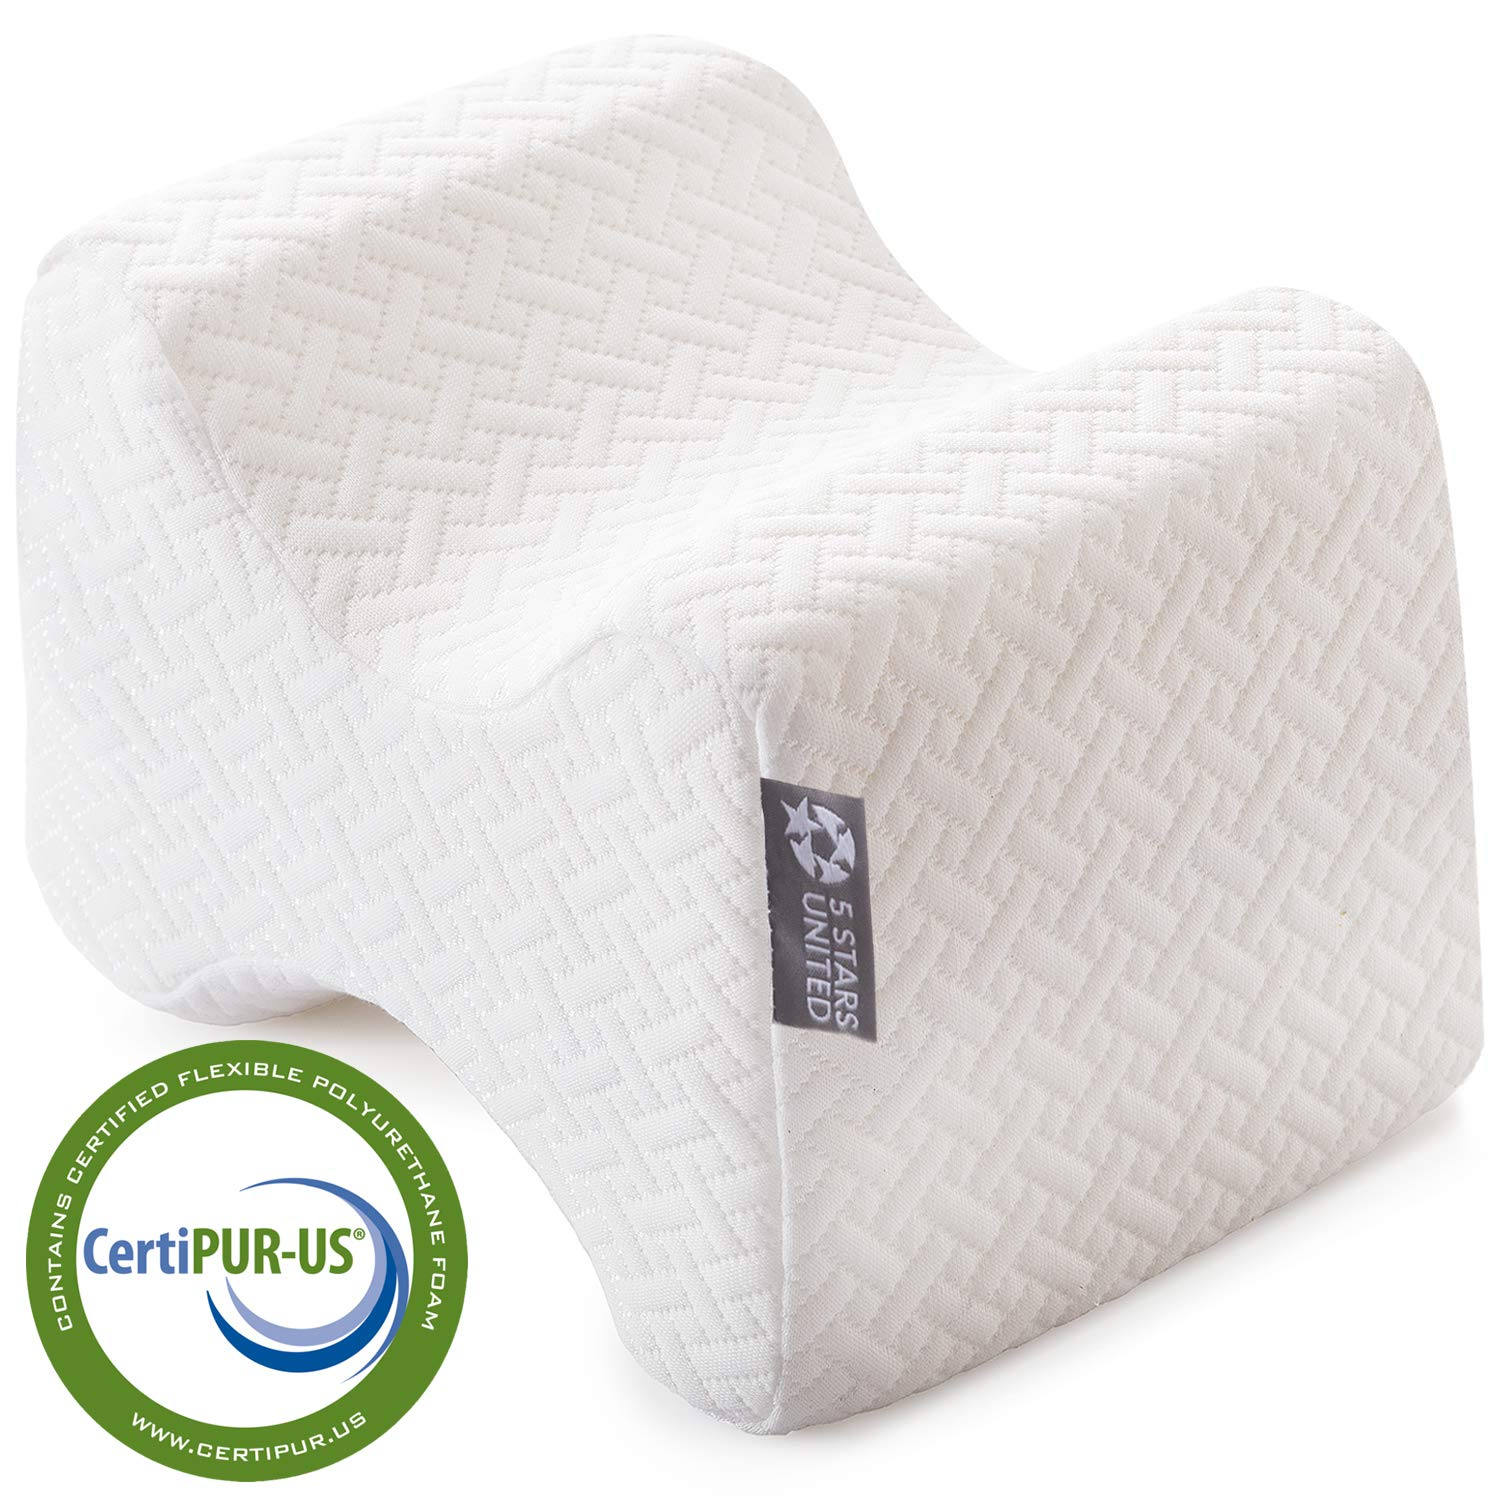 Knee Pillow for Side Sleepers - 100% Memory Foam Wedge Contour